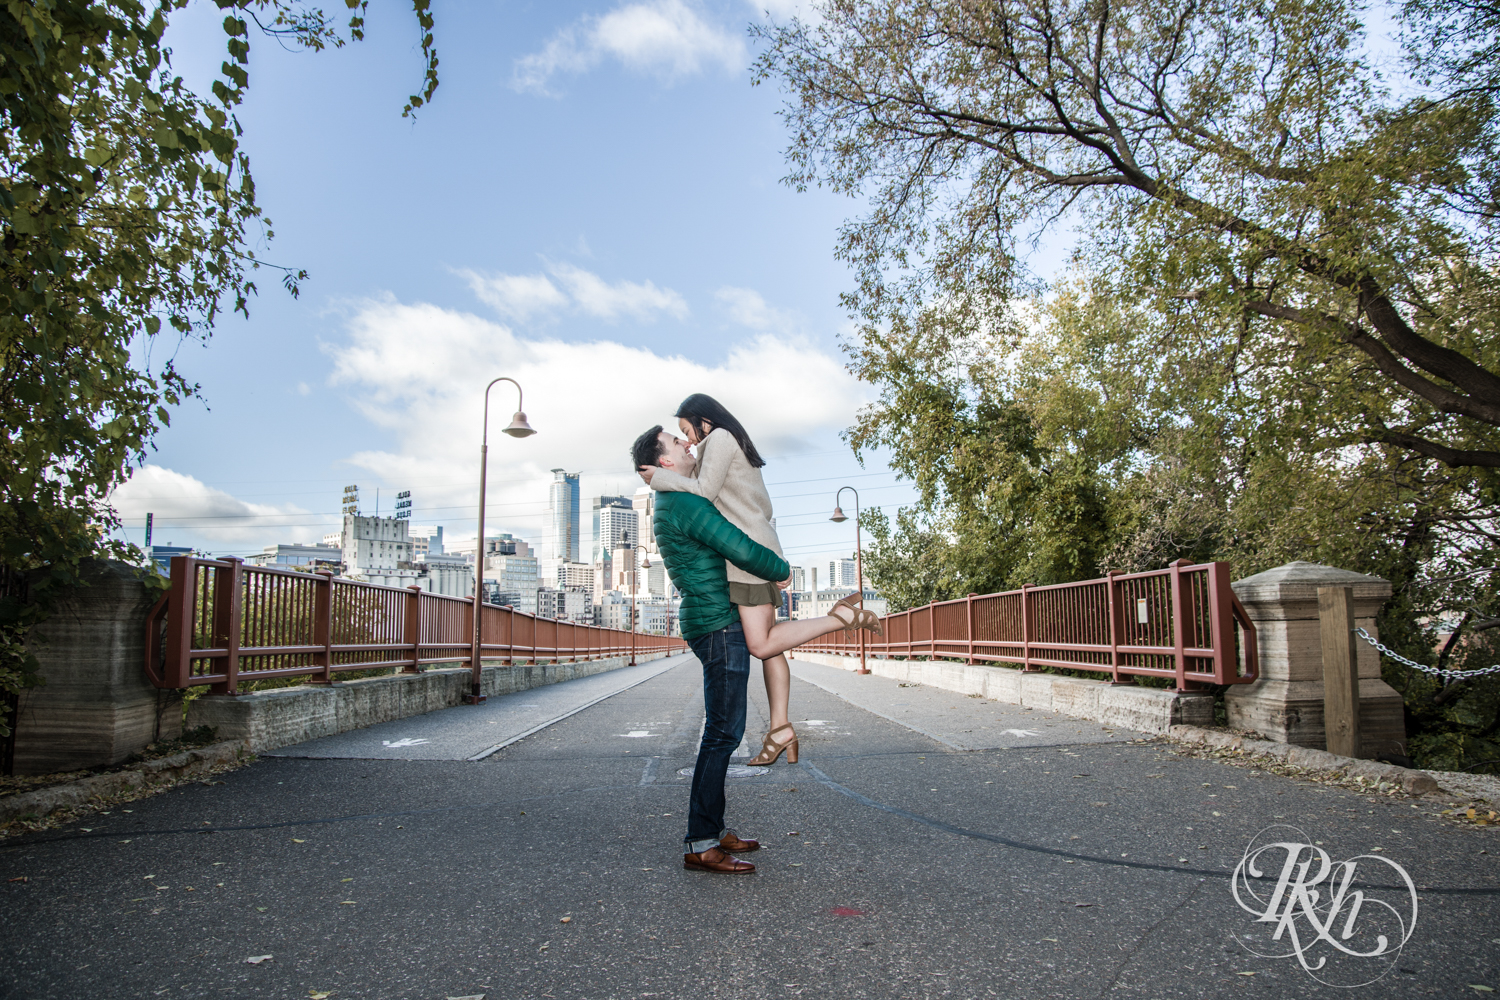 Courtney and Nick - Minnesota Engagement Photography - Stone Arch Bride - RKH Images (8 of 14).jpg